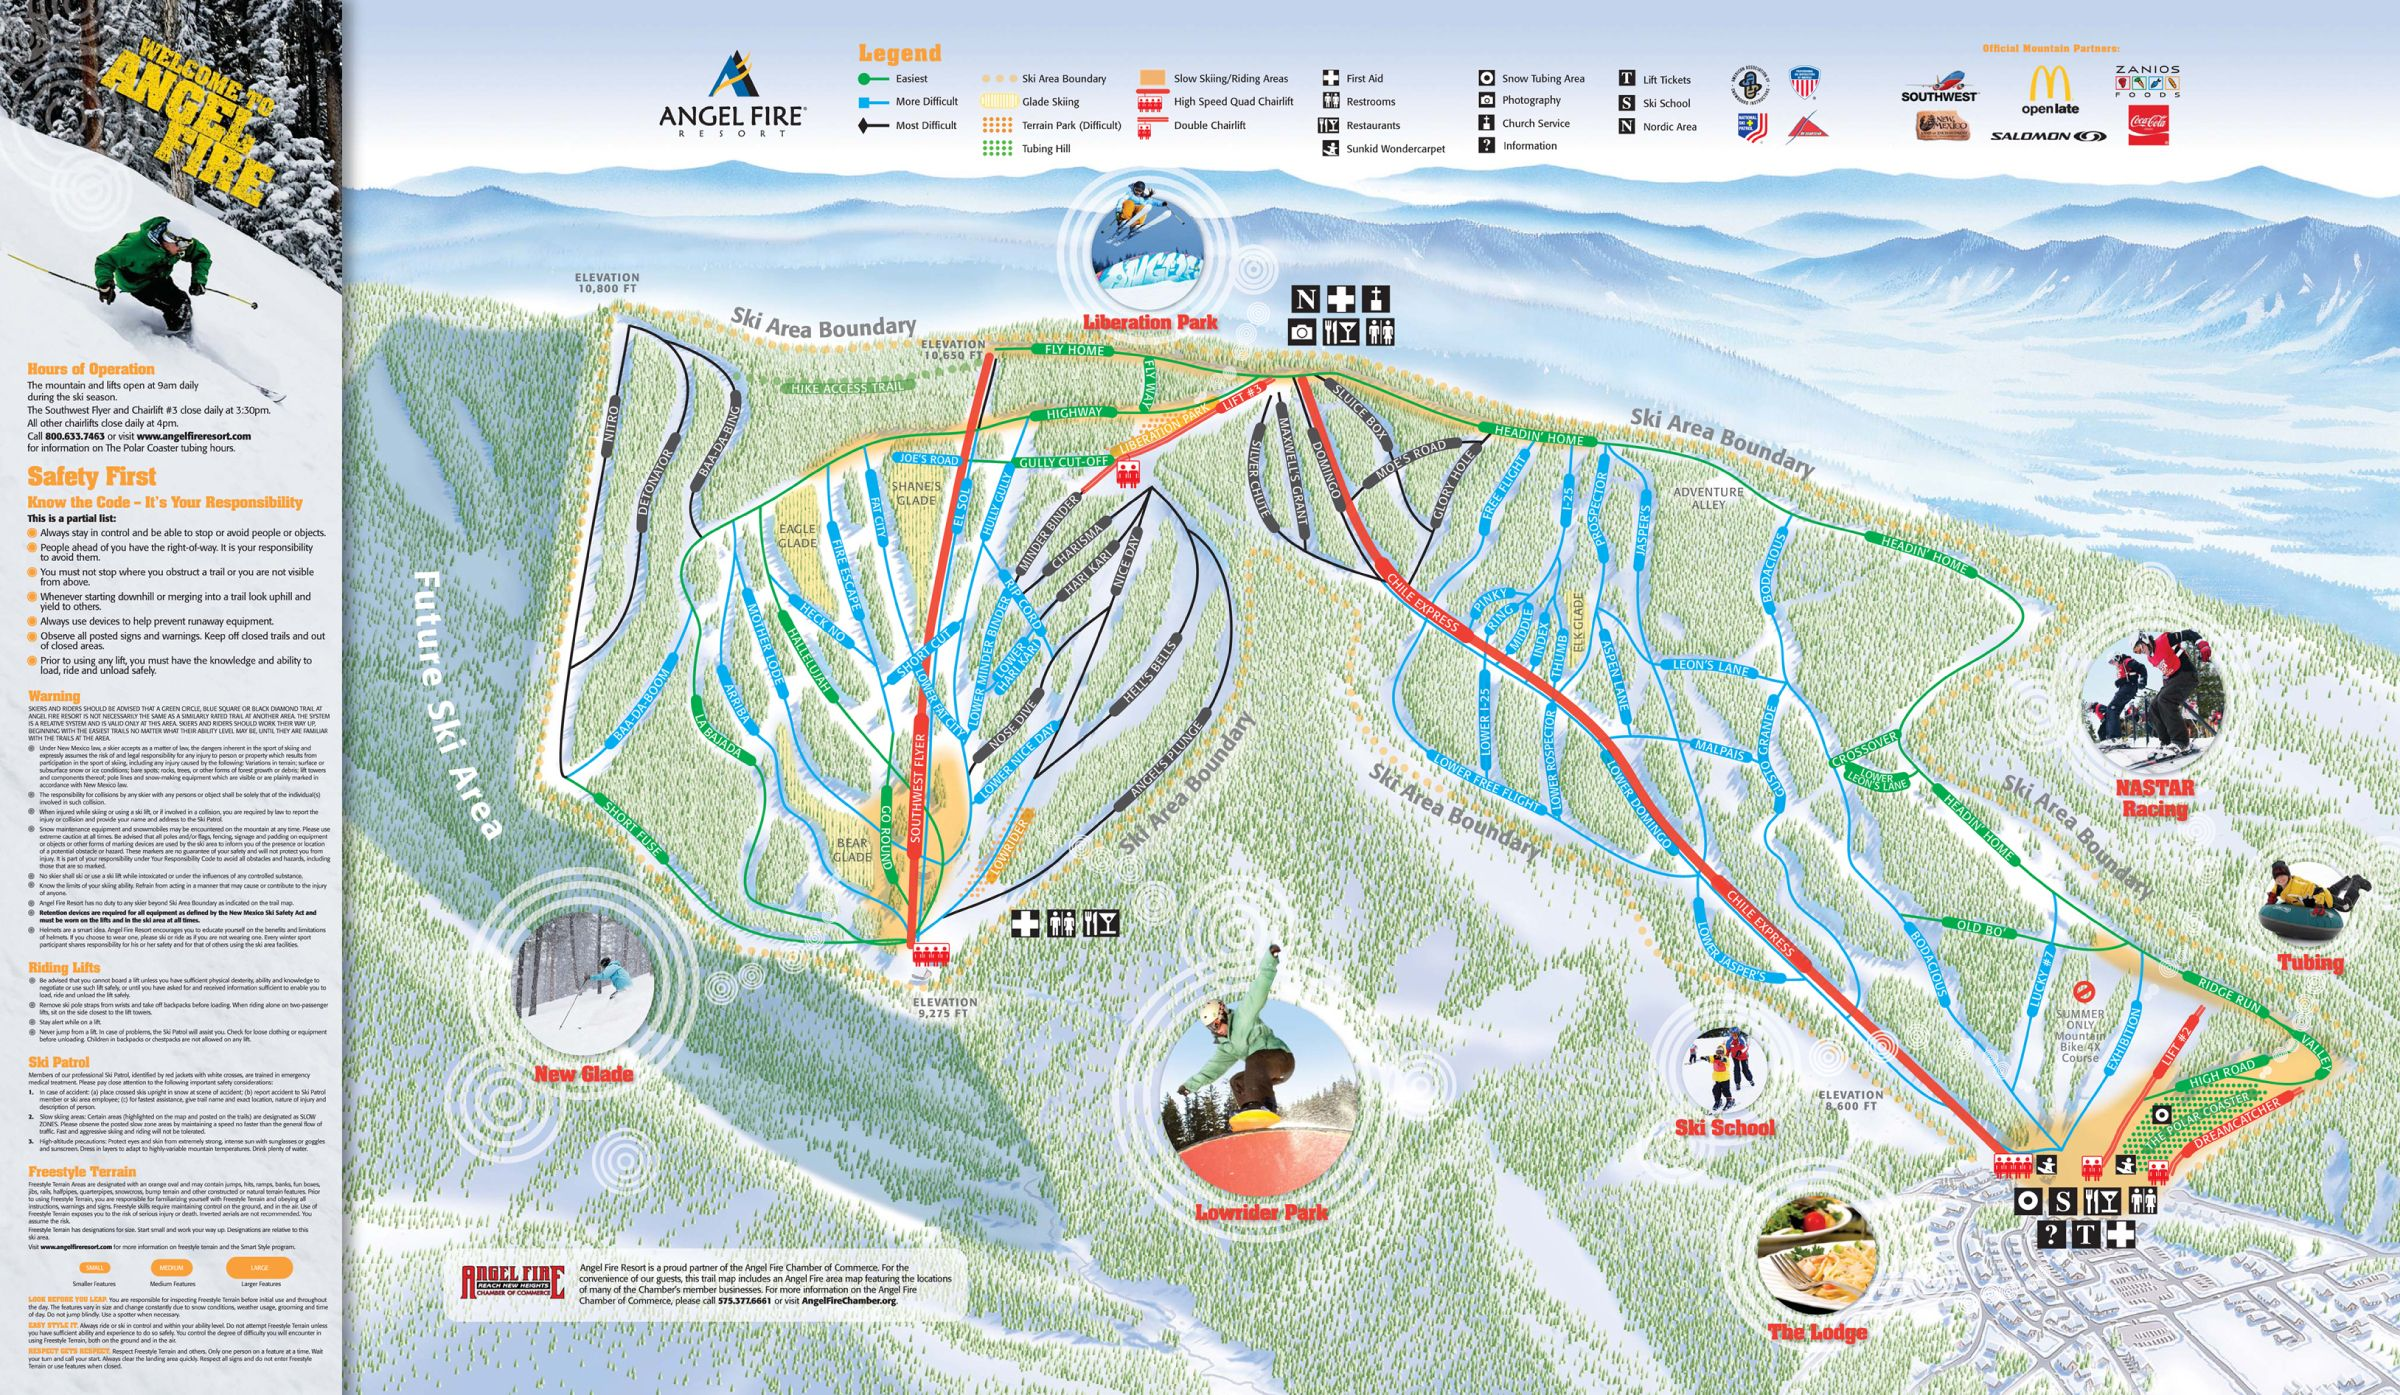 Angel Fire Resort Ski Trail Map Angel Fire New Mexico United